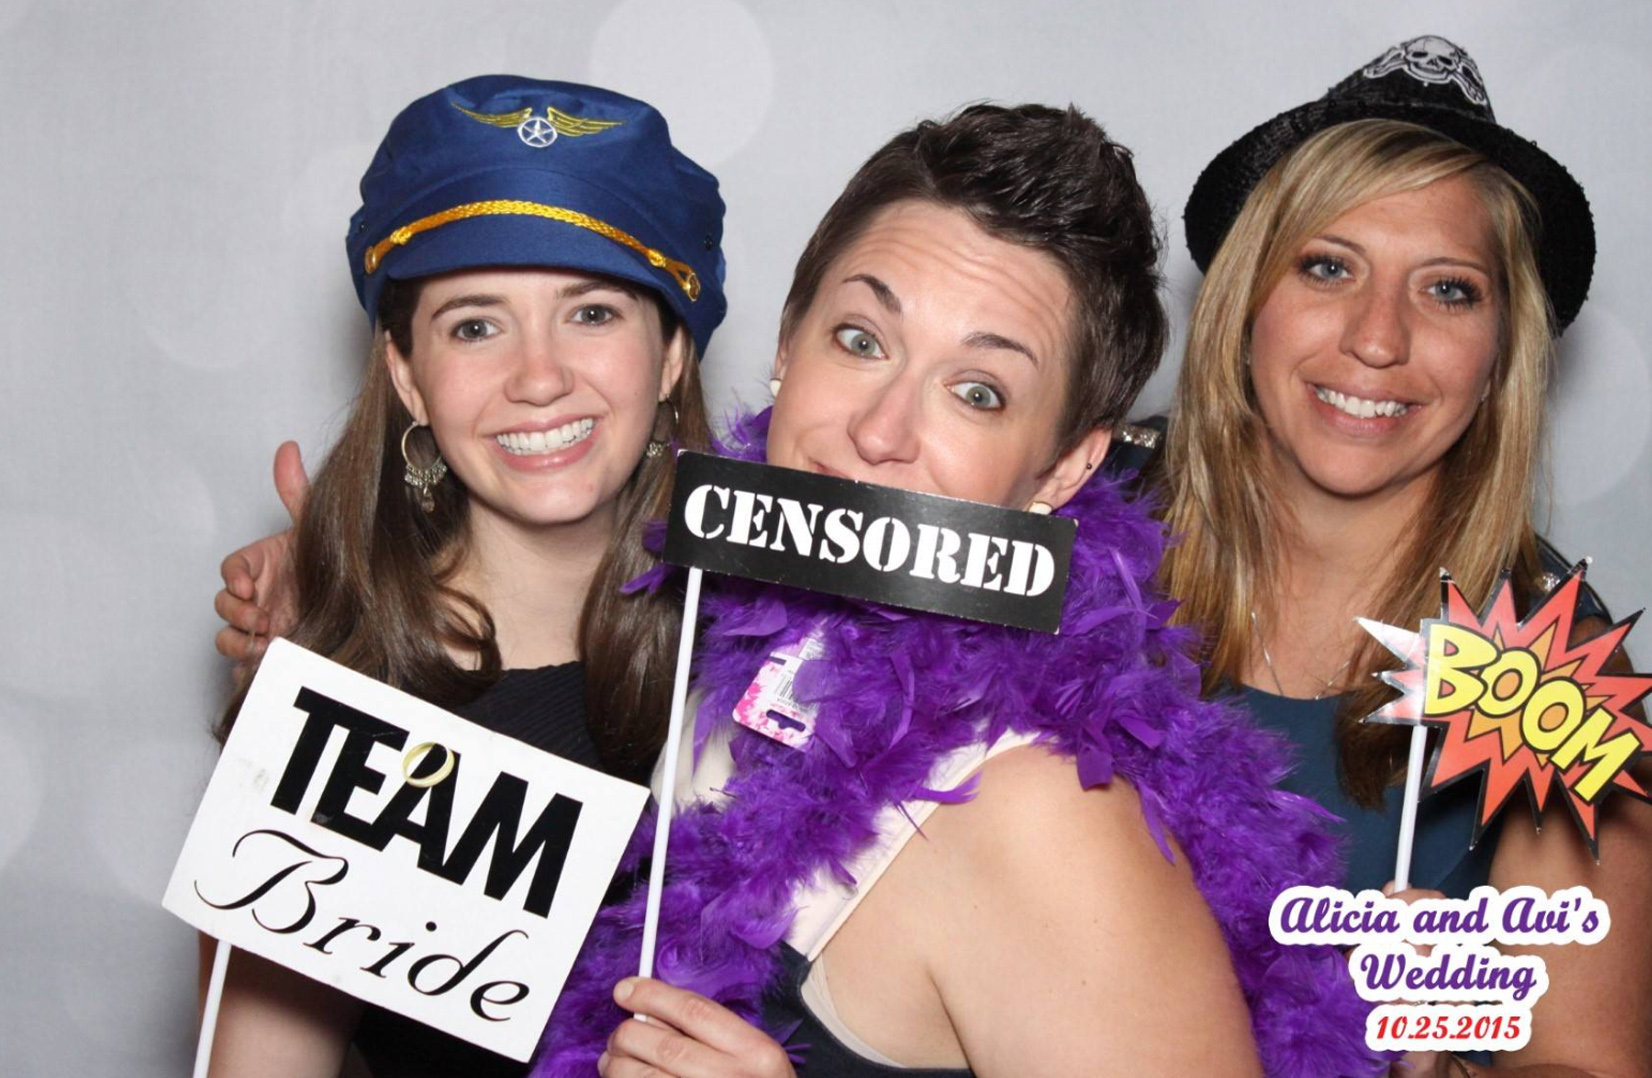 alicia-and-avi-wedding-212-photo-booth